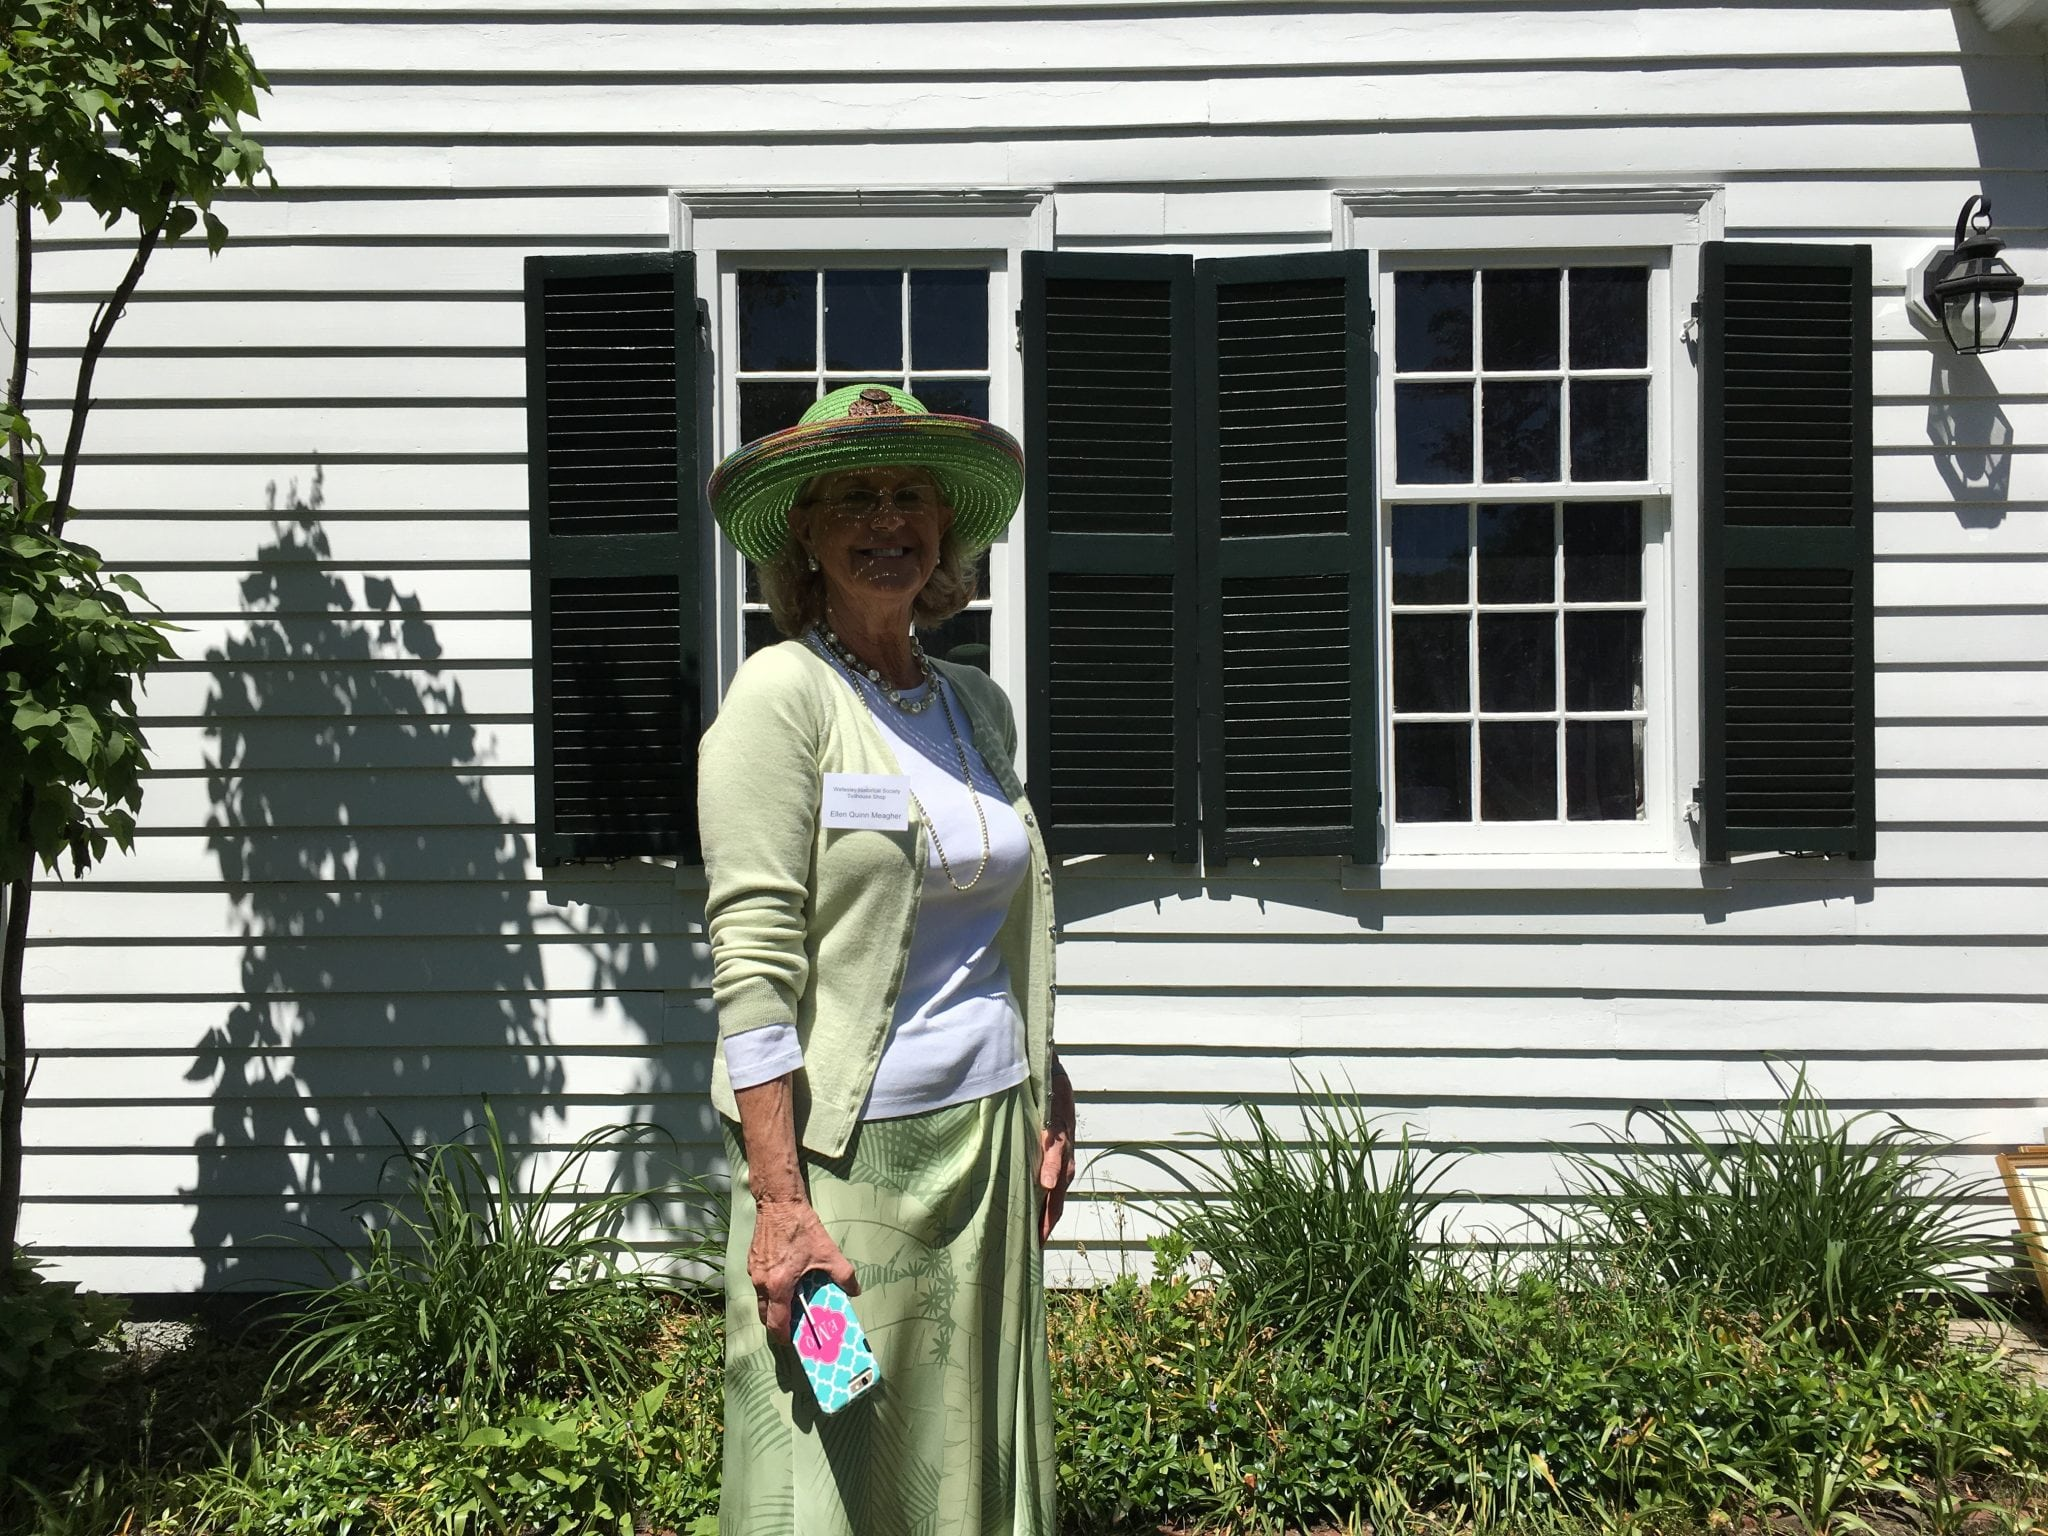 Wellesley Historical Society's Ellen Meagher